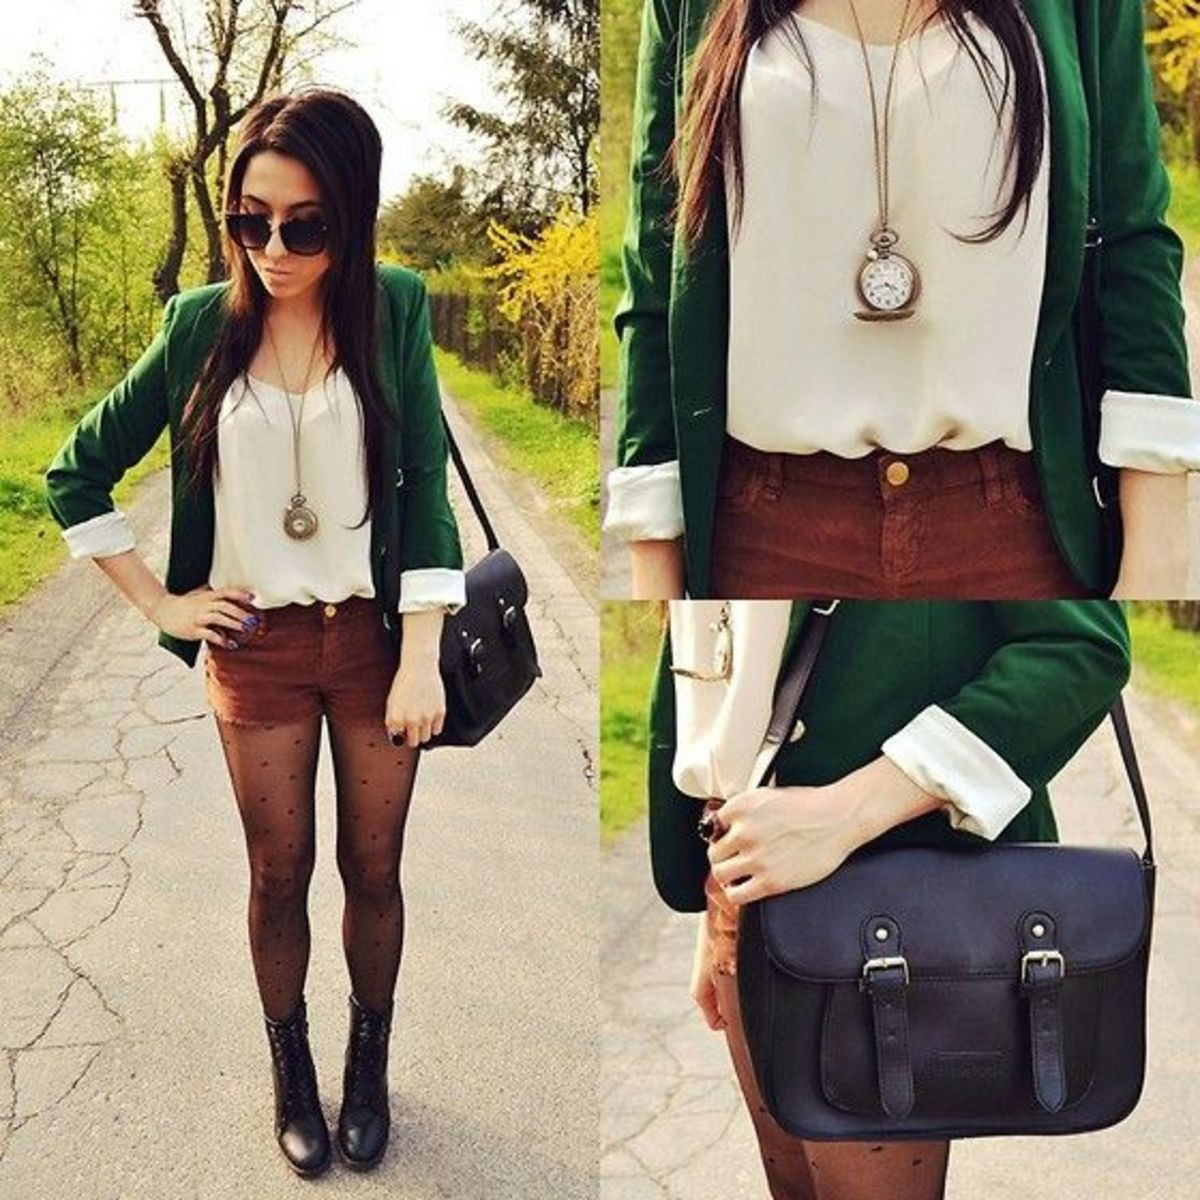 Emerald Blazer, Professional, Fashion, Fashion Forward, Fall, Winter, Corduroy Shorts, Printed Tights, Polka-dot Tights, Boots